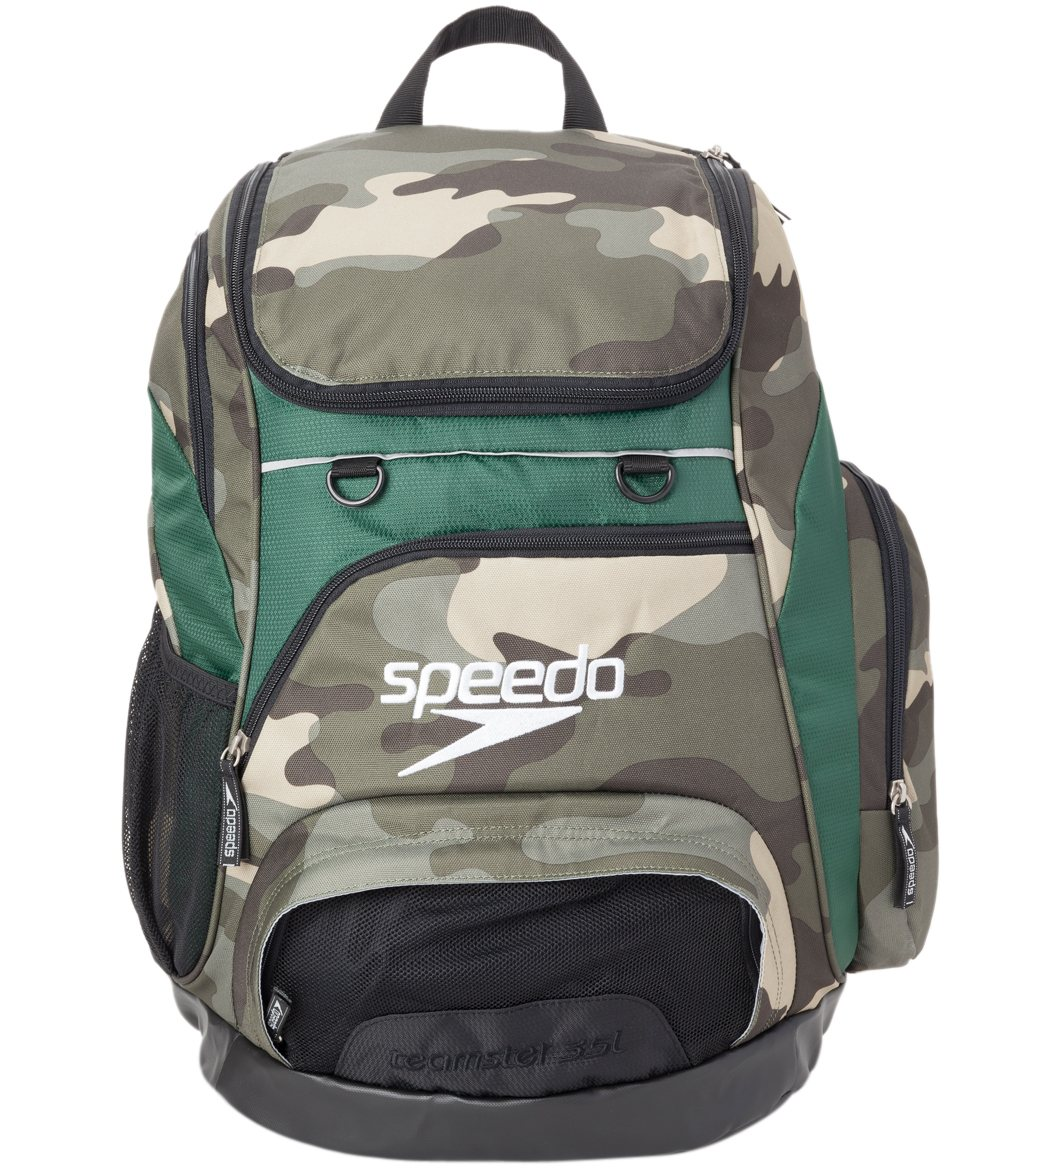 51ccd5281c3e Speedo Large 35L Teamster Backpack at SwimOutlet.com - Free Shipping